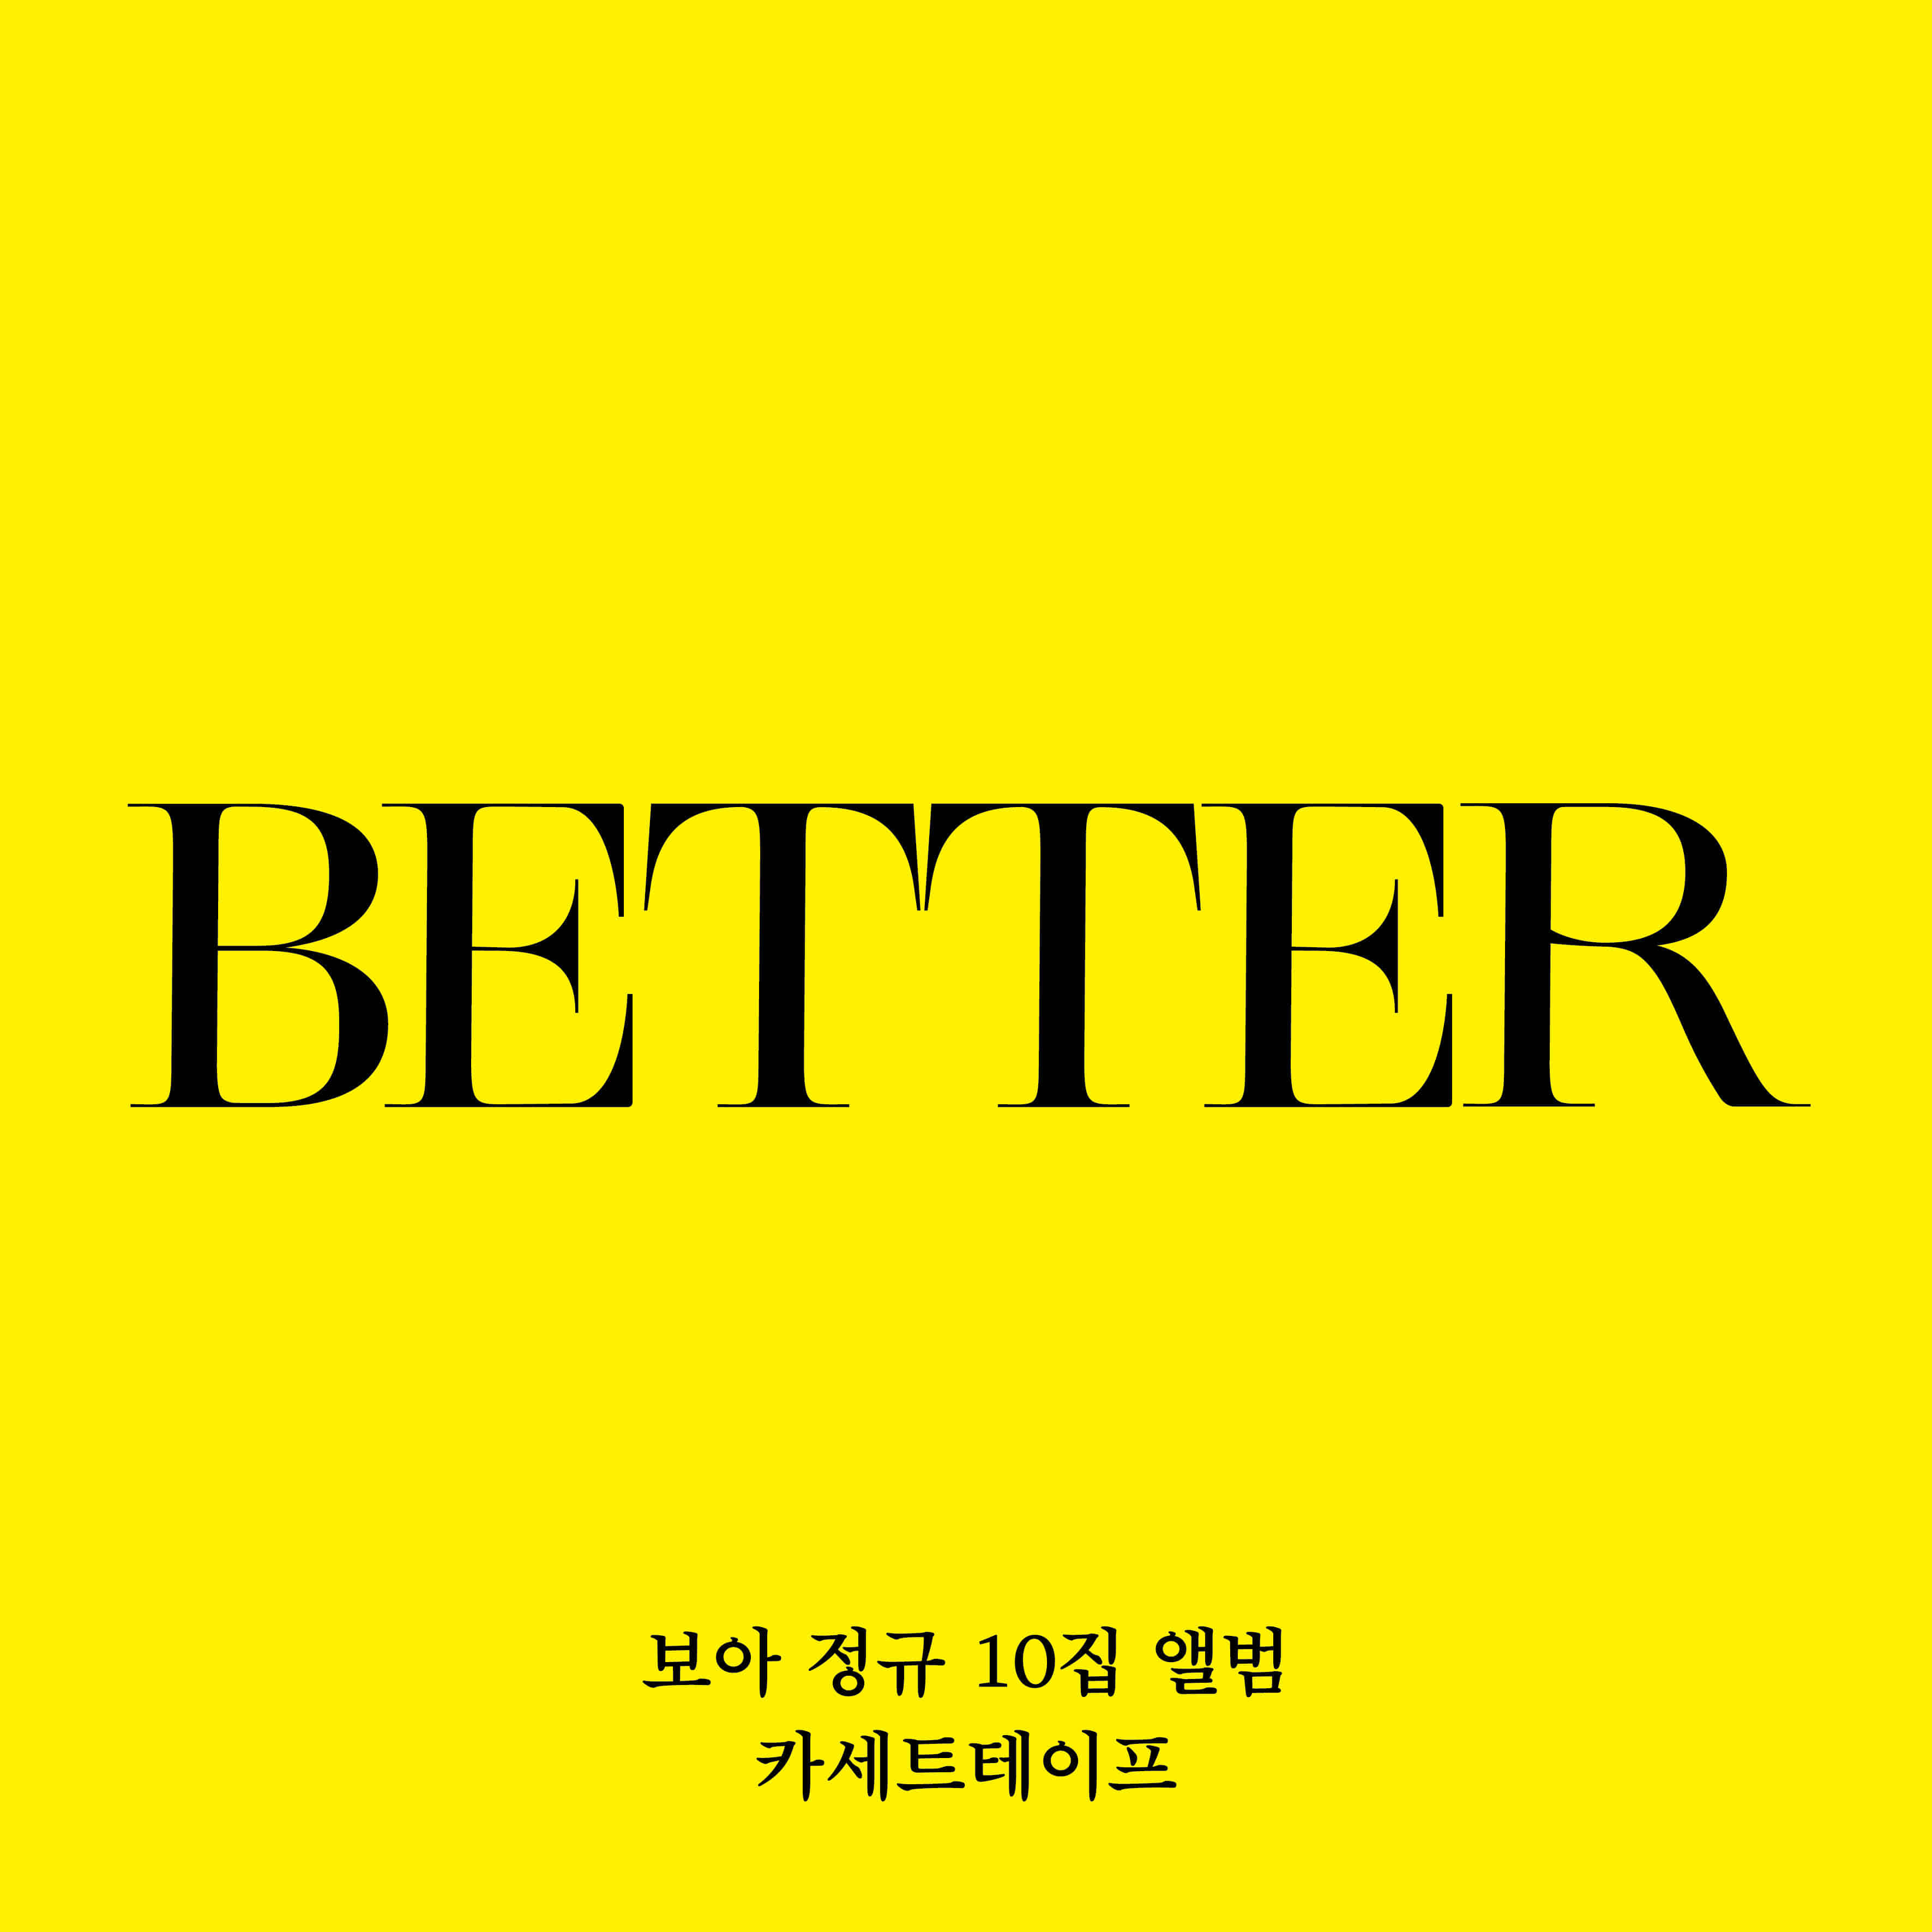 BoA - Album Vol.10 [BETTER] (first press Limited Edition) (Cassette Tape)케이팝스토어(kpop store)